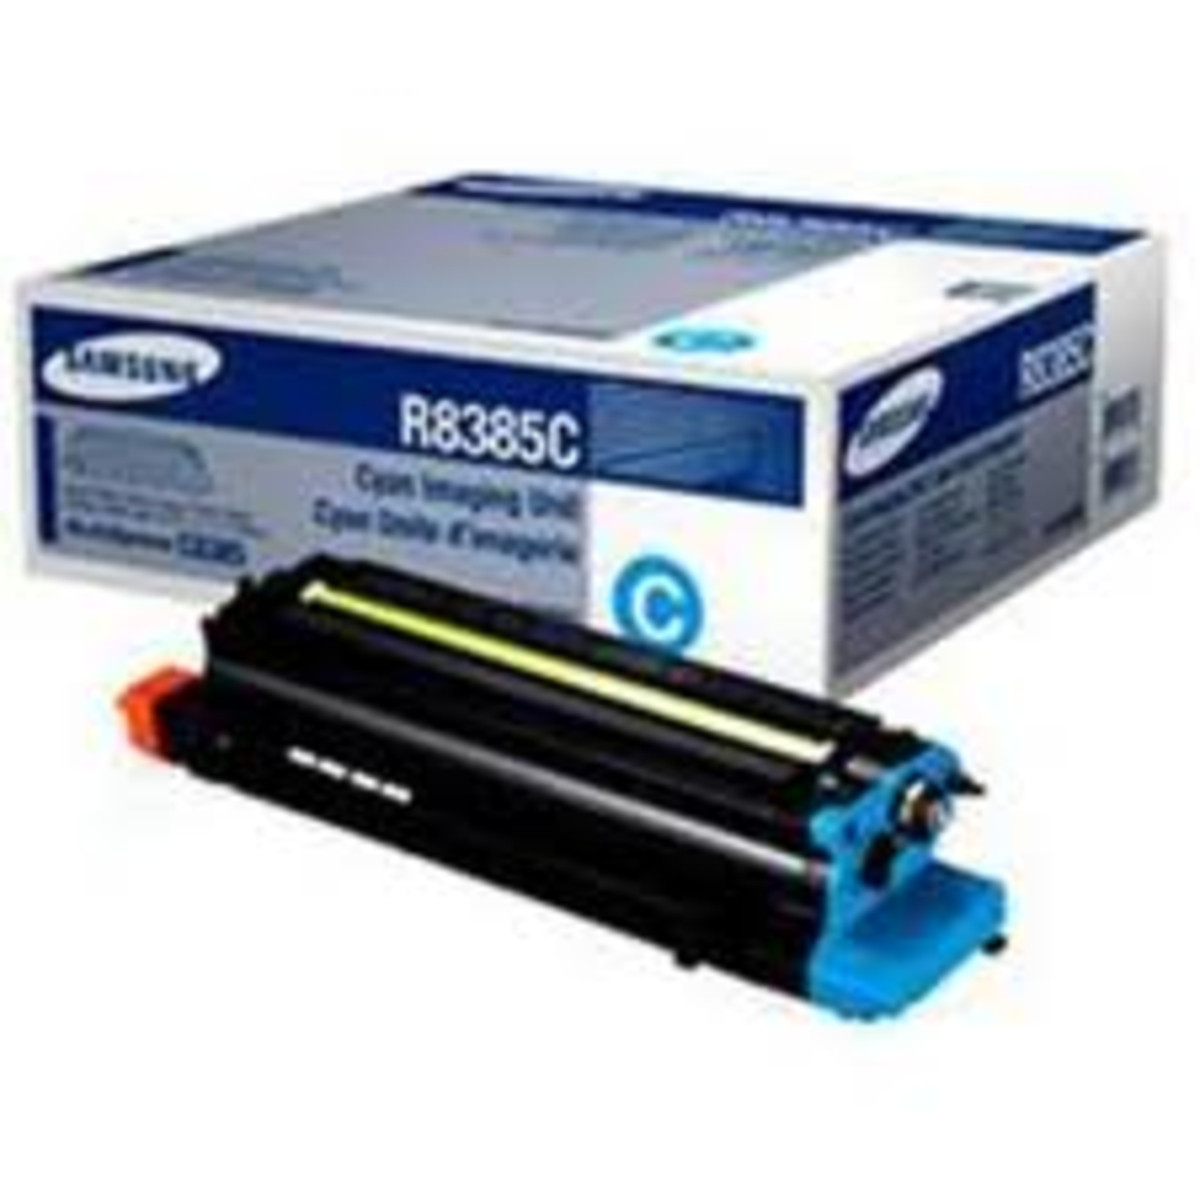 Samsung CLX-R8385C Cyan Drum Unit